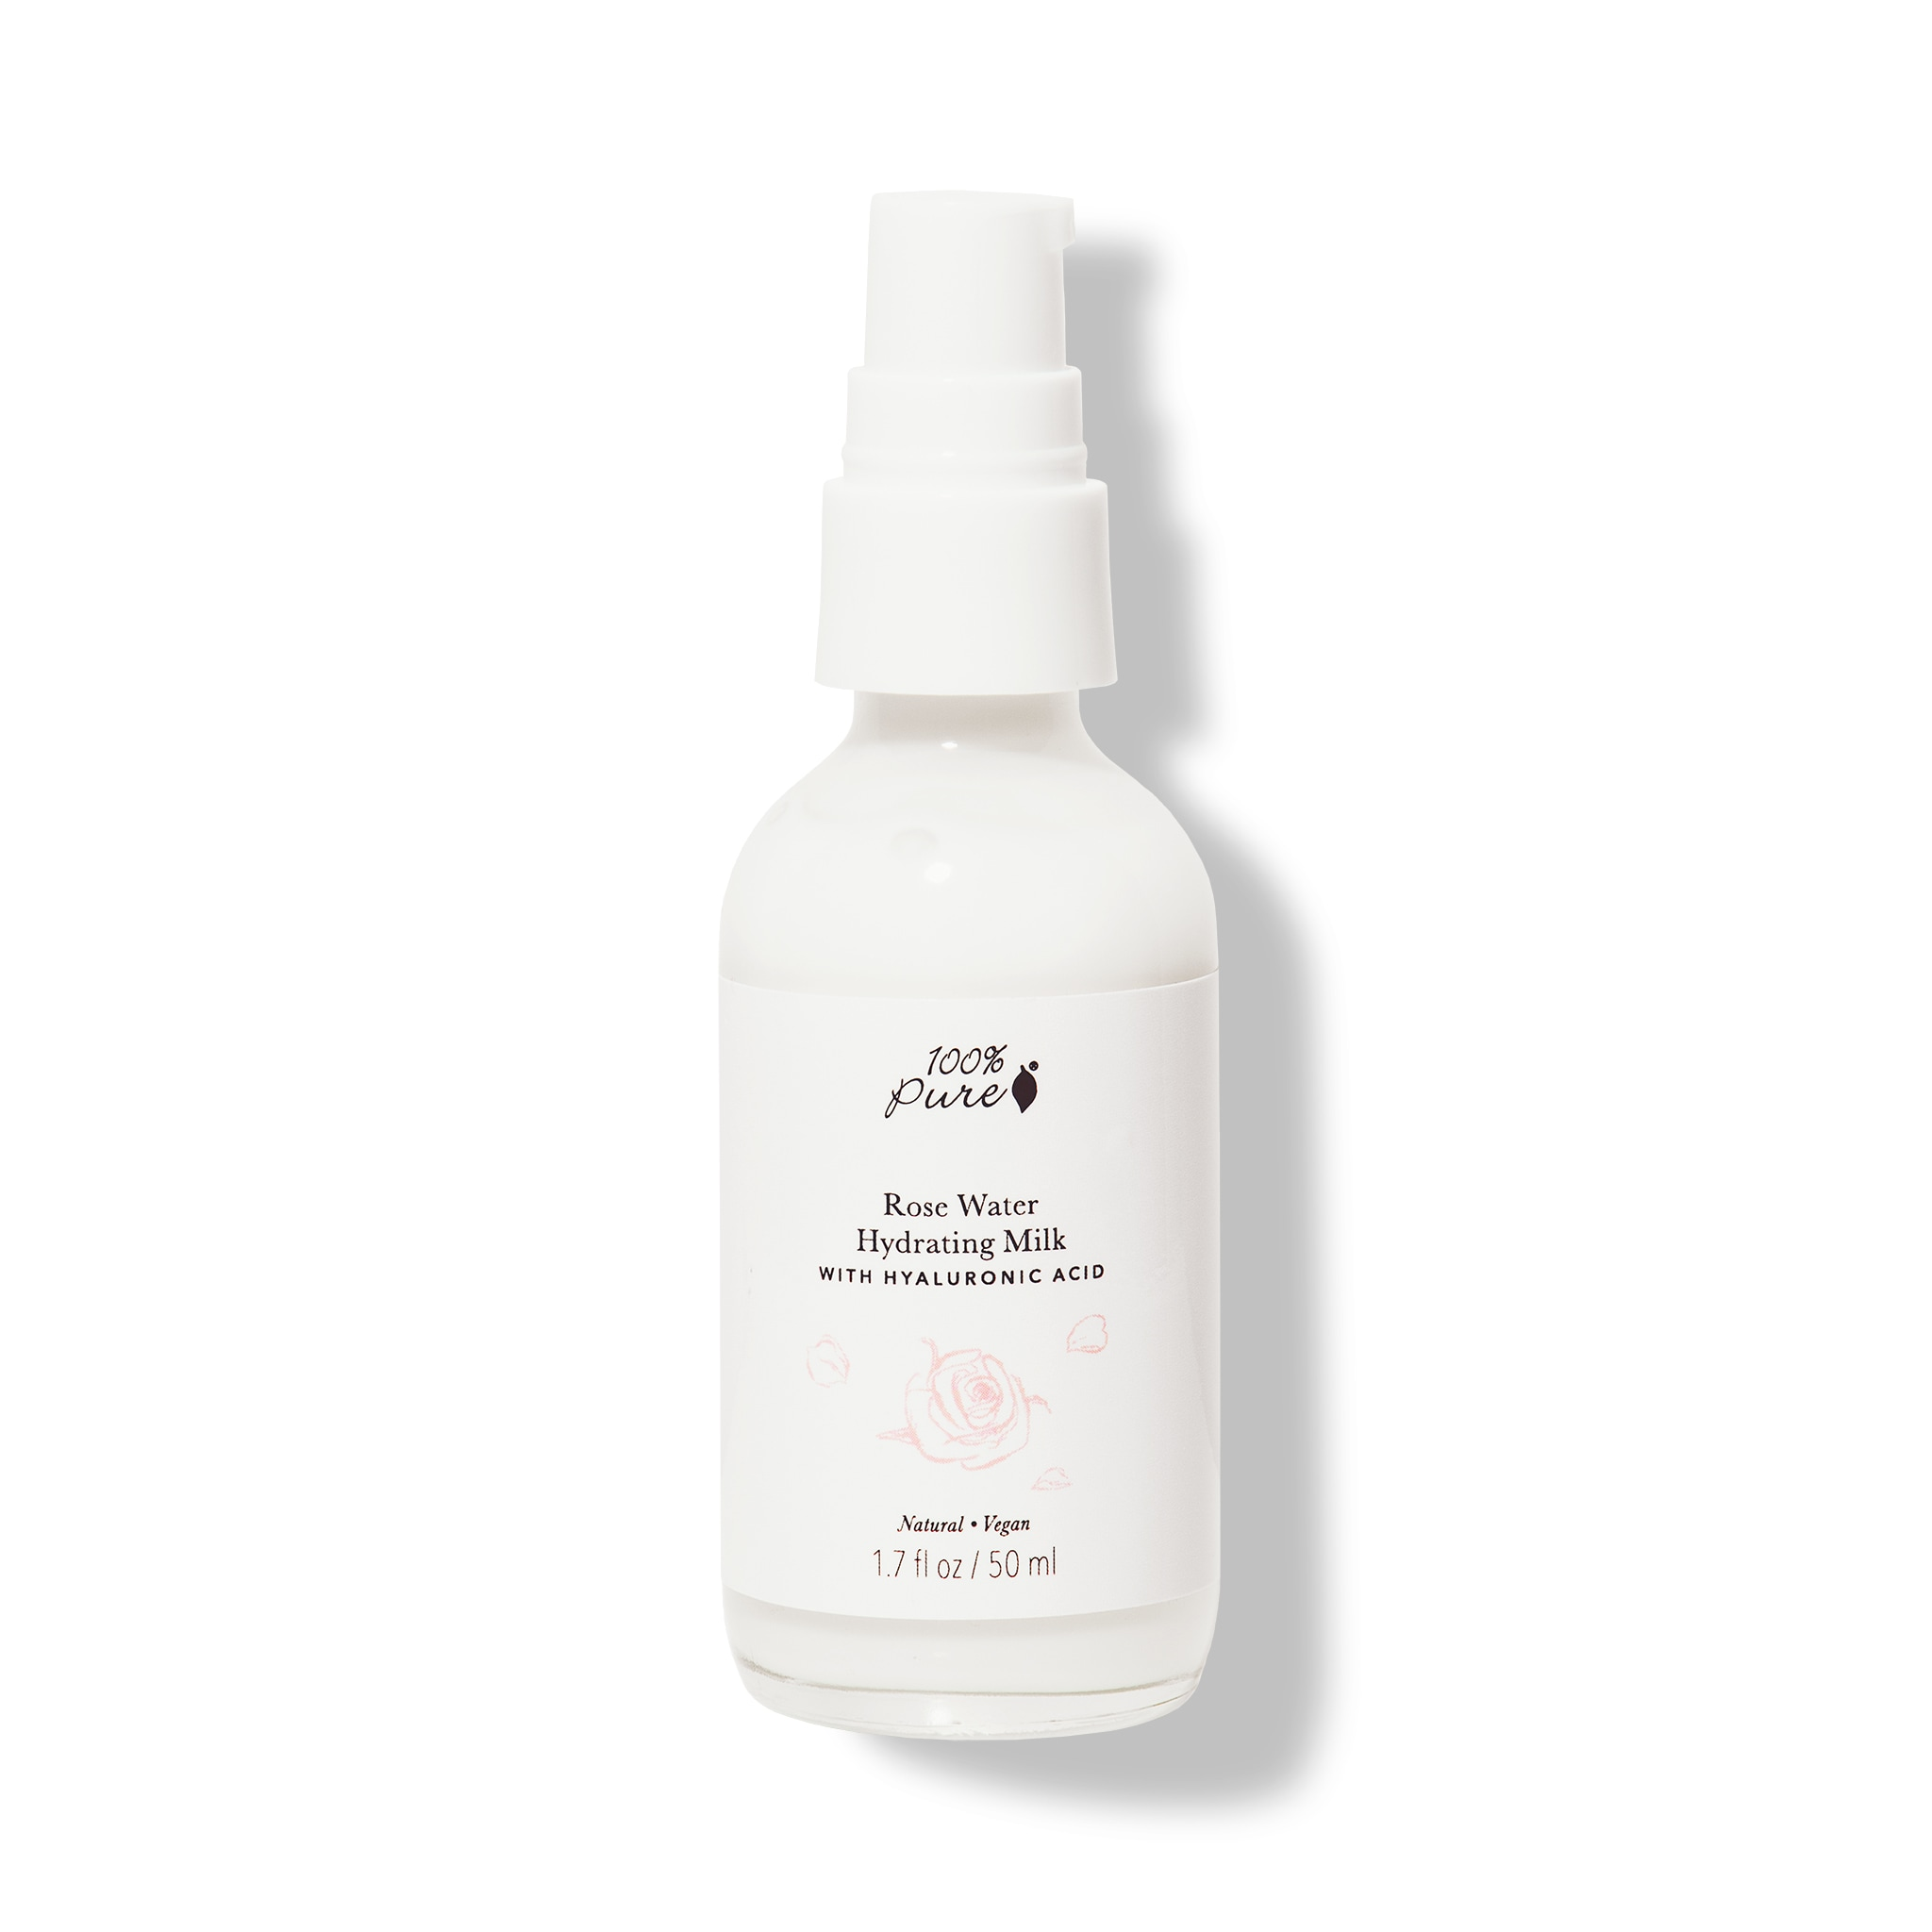 Product Grid - Rose Water Hydrating Milk